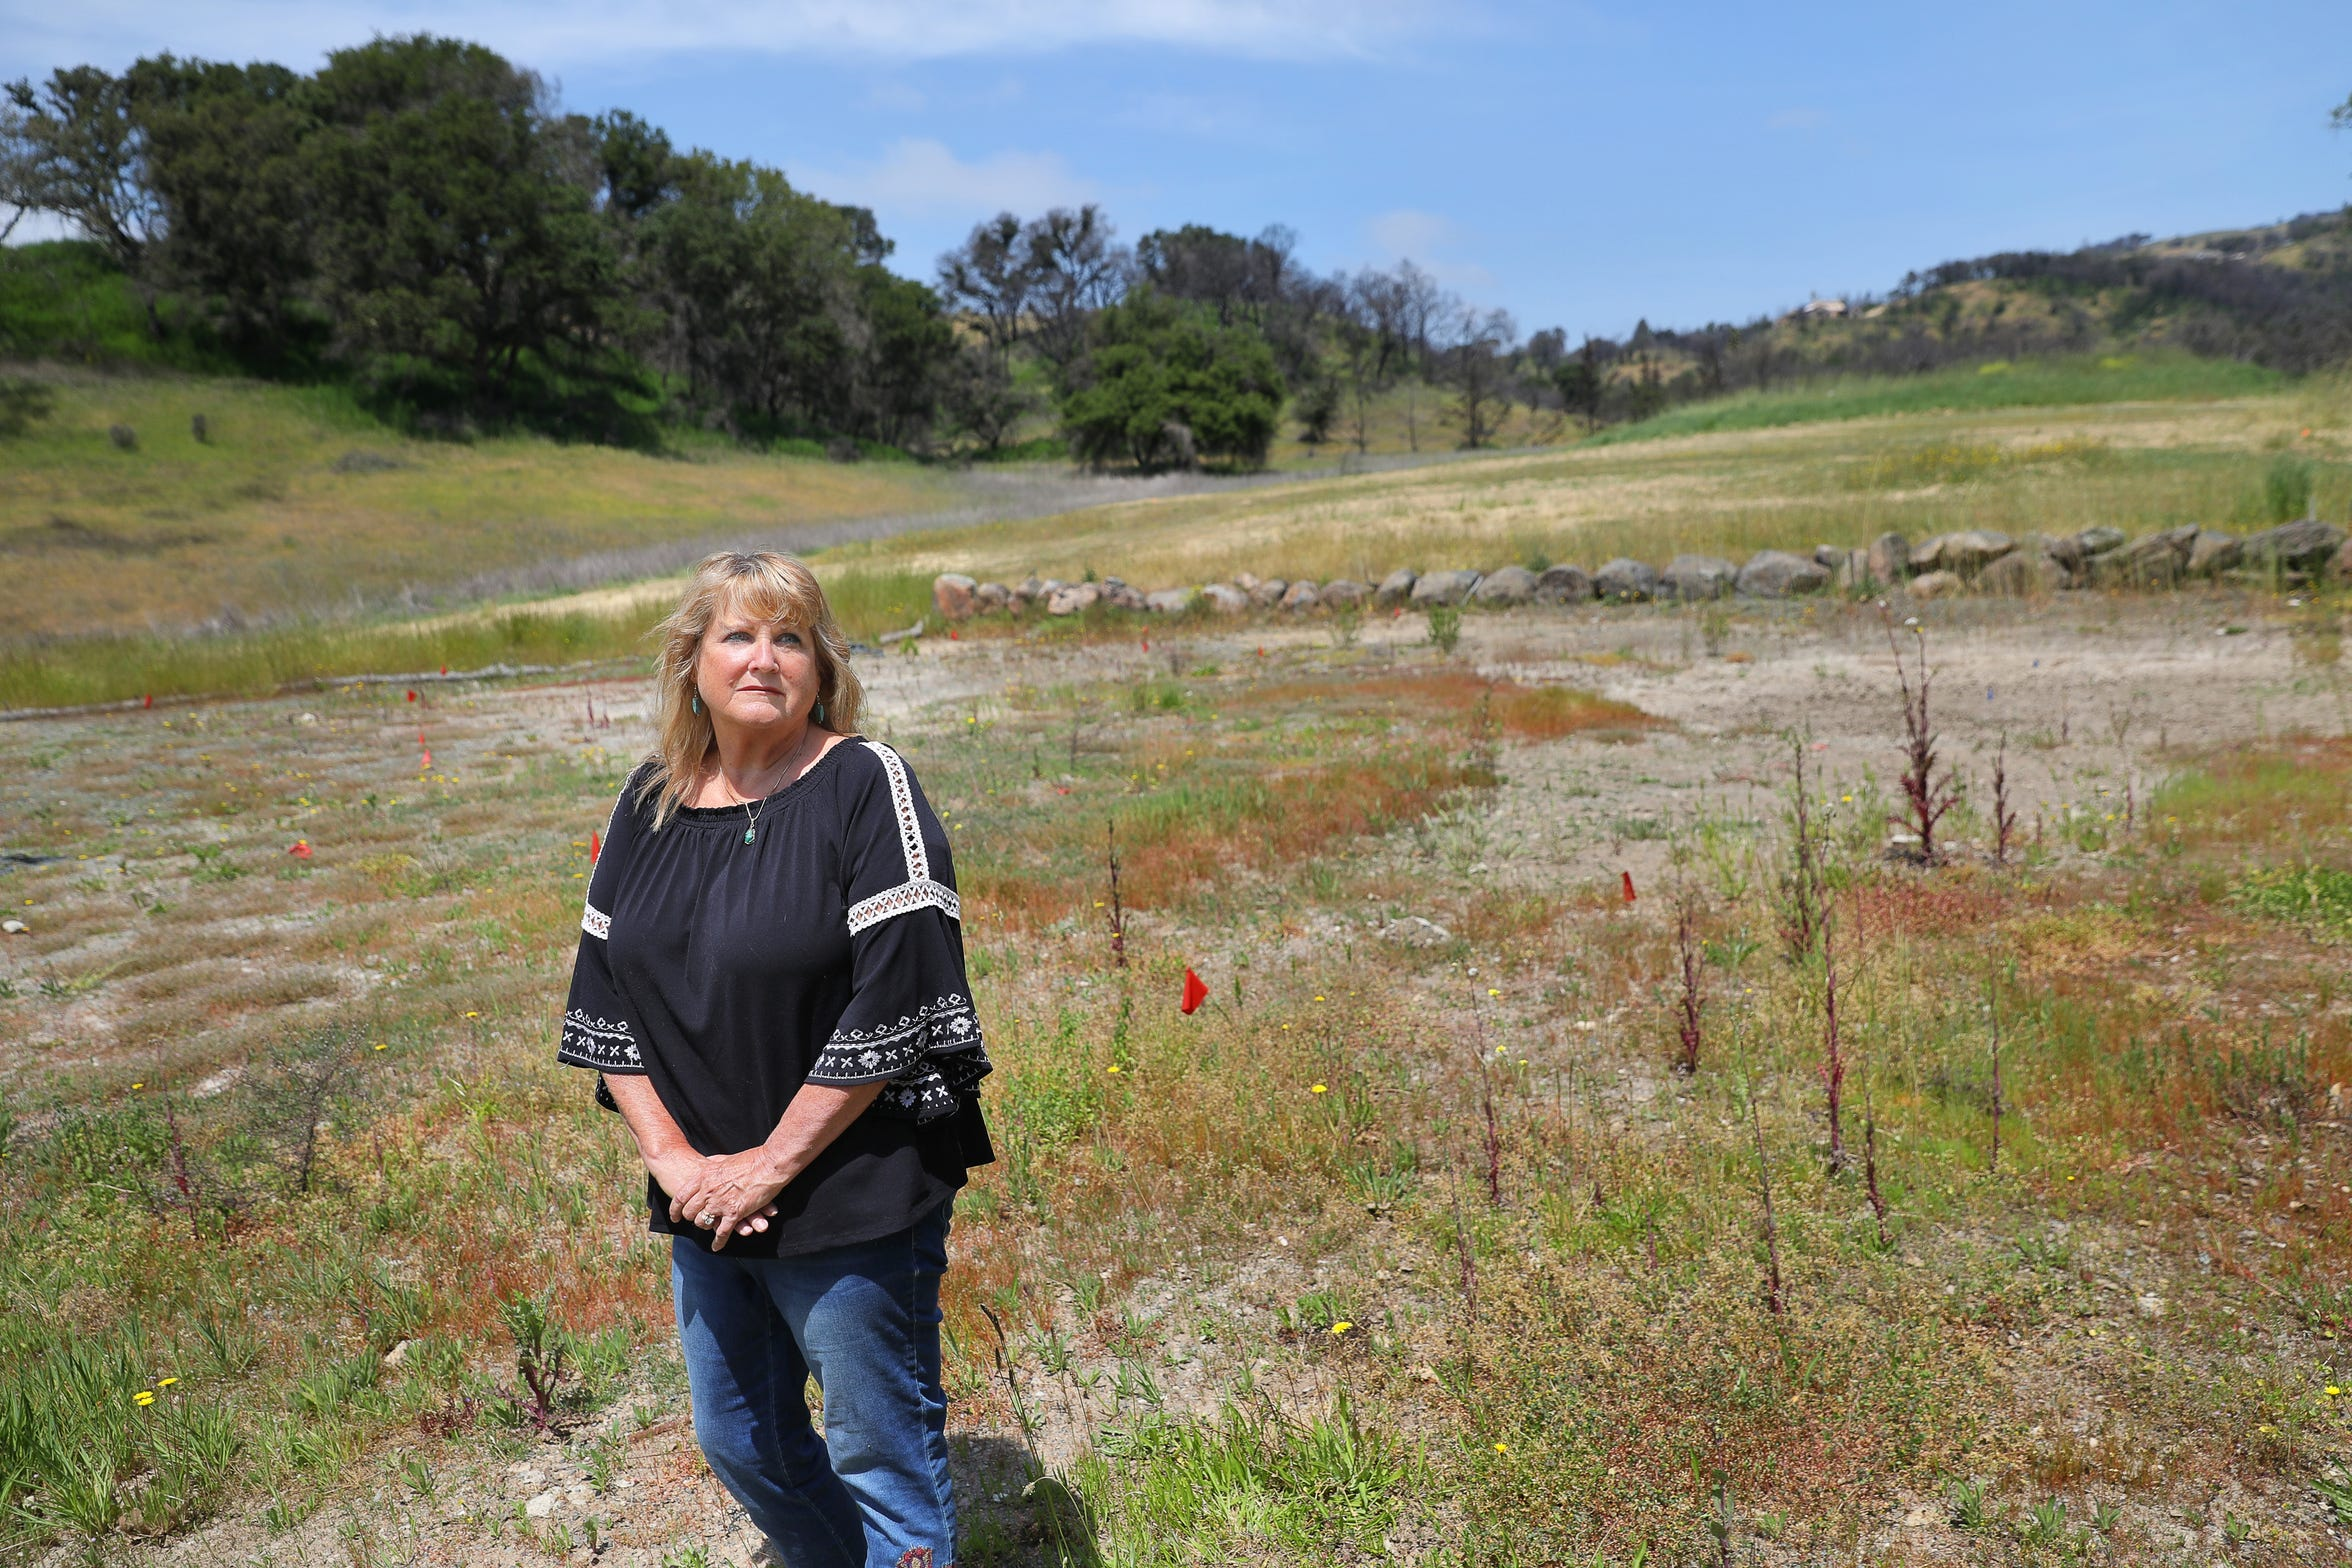 Lynette Kronick, who lost her Santa Rosa area home in the Tubbs fire, is still waiting for construction to begin on rebuilding her home after encountering problems with Chiaramonte Construction & Plumbing Inc. of Tulare.